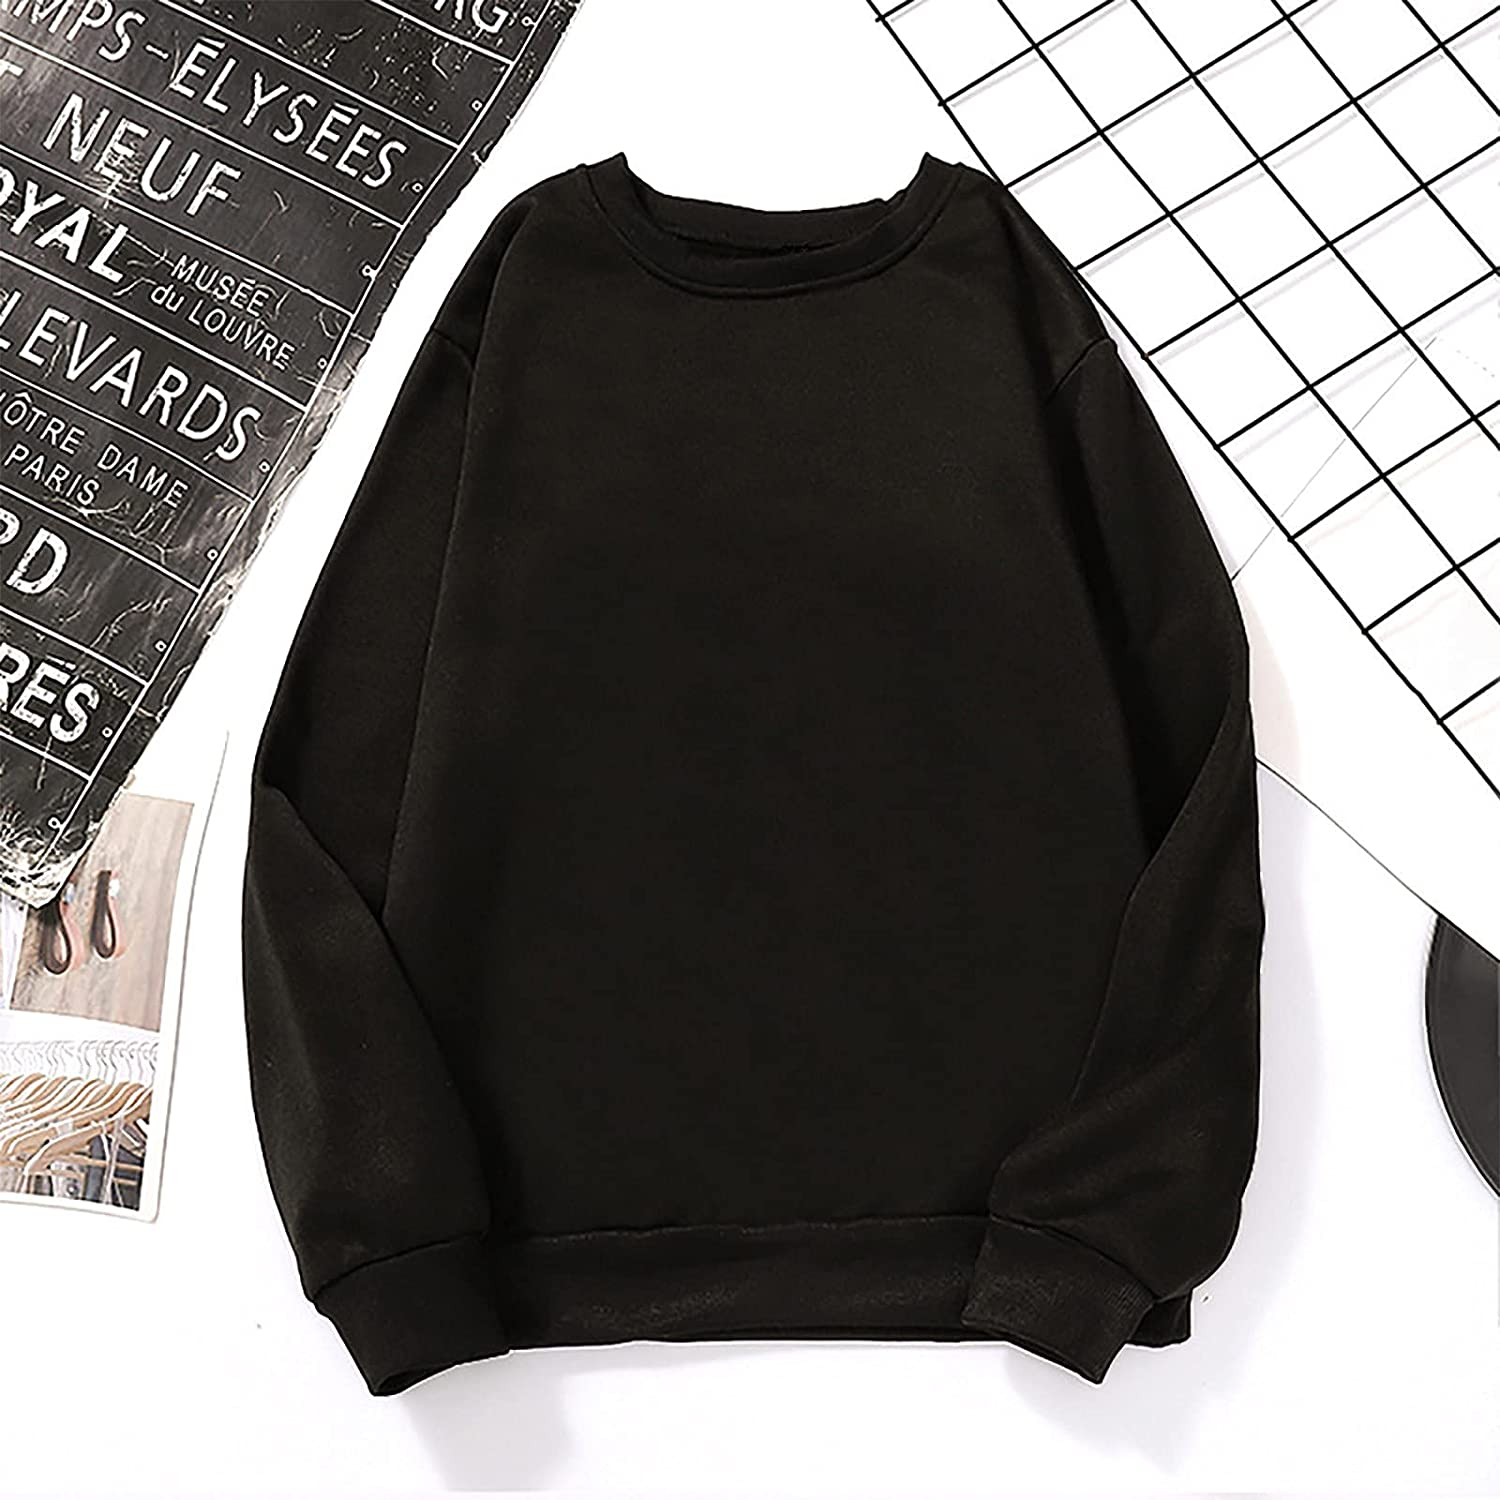 Autumn Sweatershirt for Women Home Casual Long Sleeve Basic Jumper Tops Round Loose Fit Neck Solid Pullover